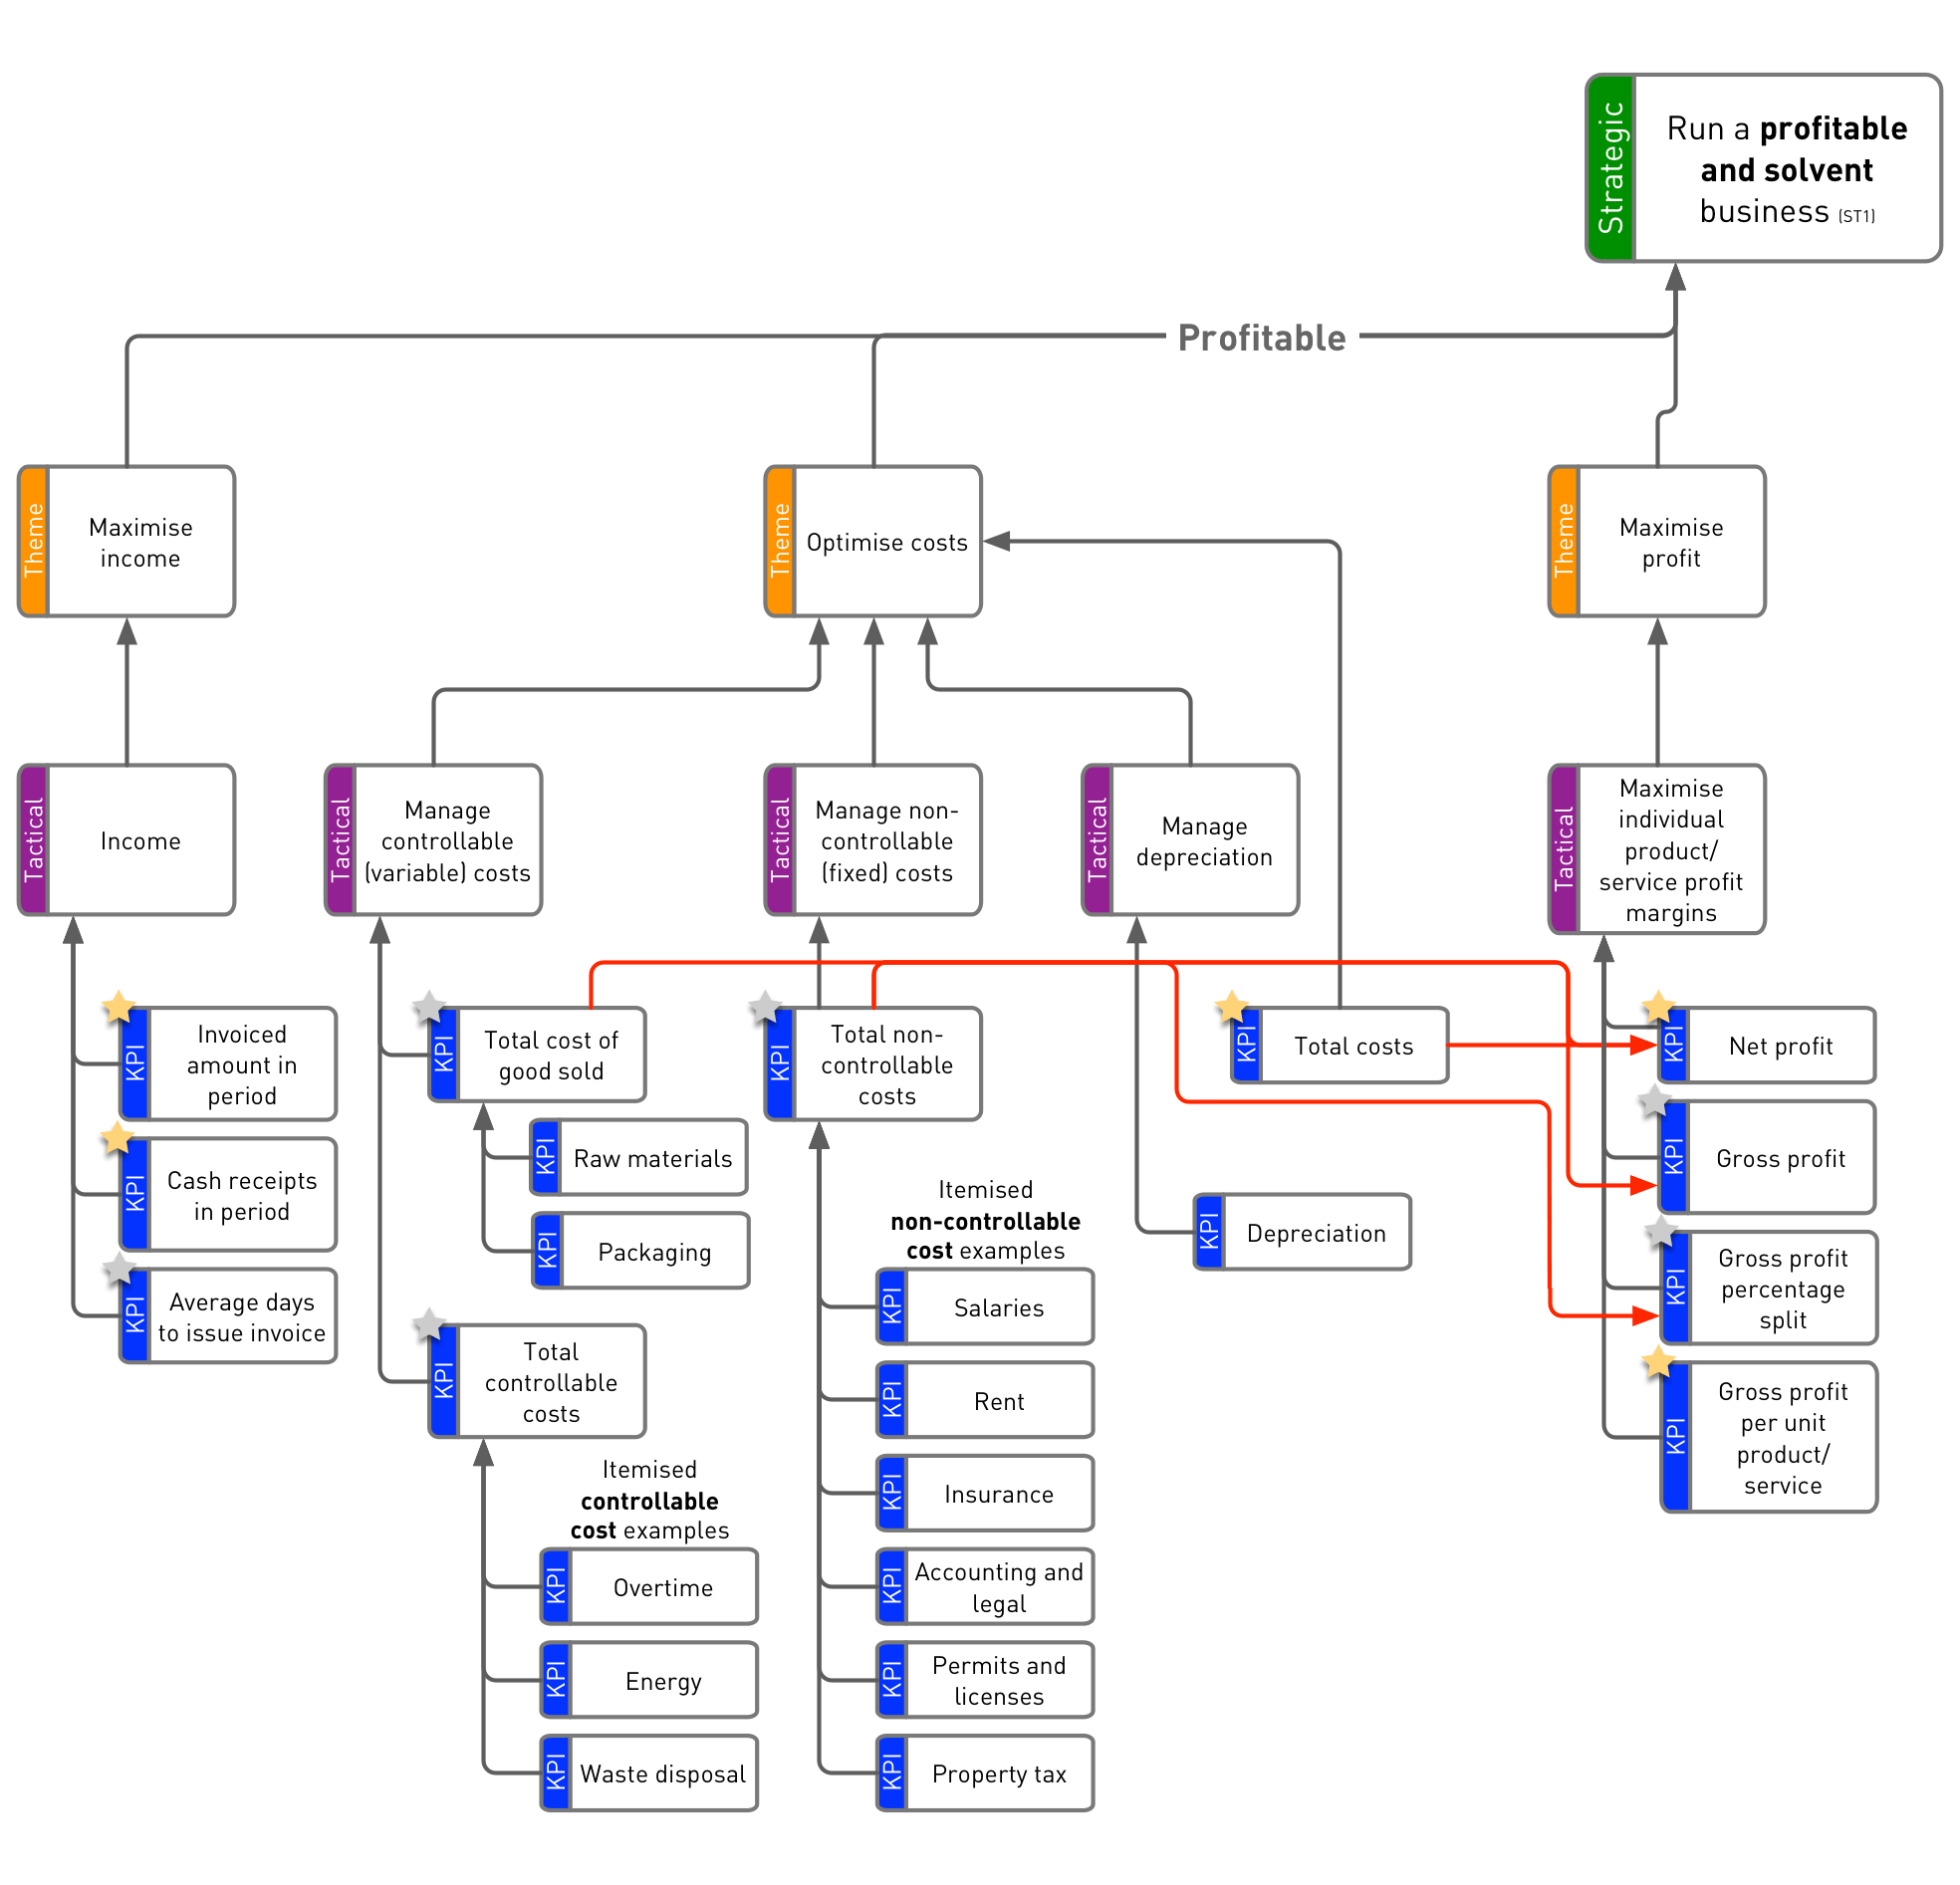 Financial KPI Tree - Profit branches - v2